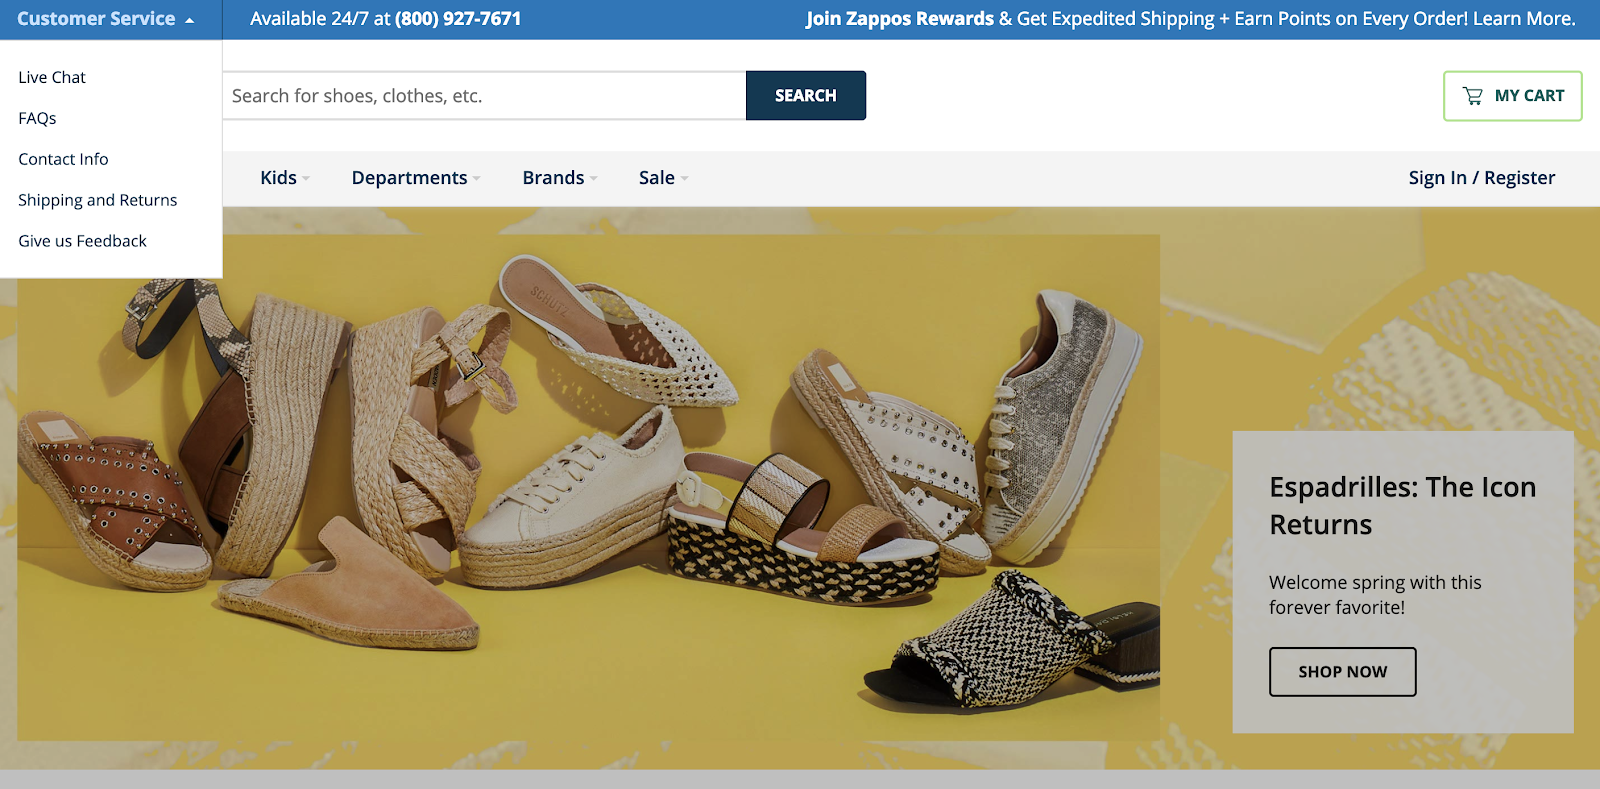 Live chat - Zappos